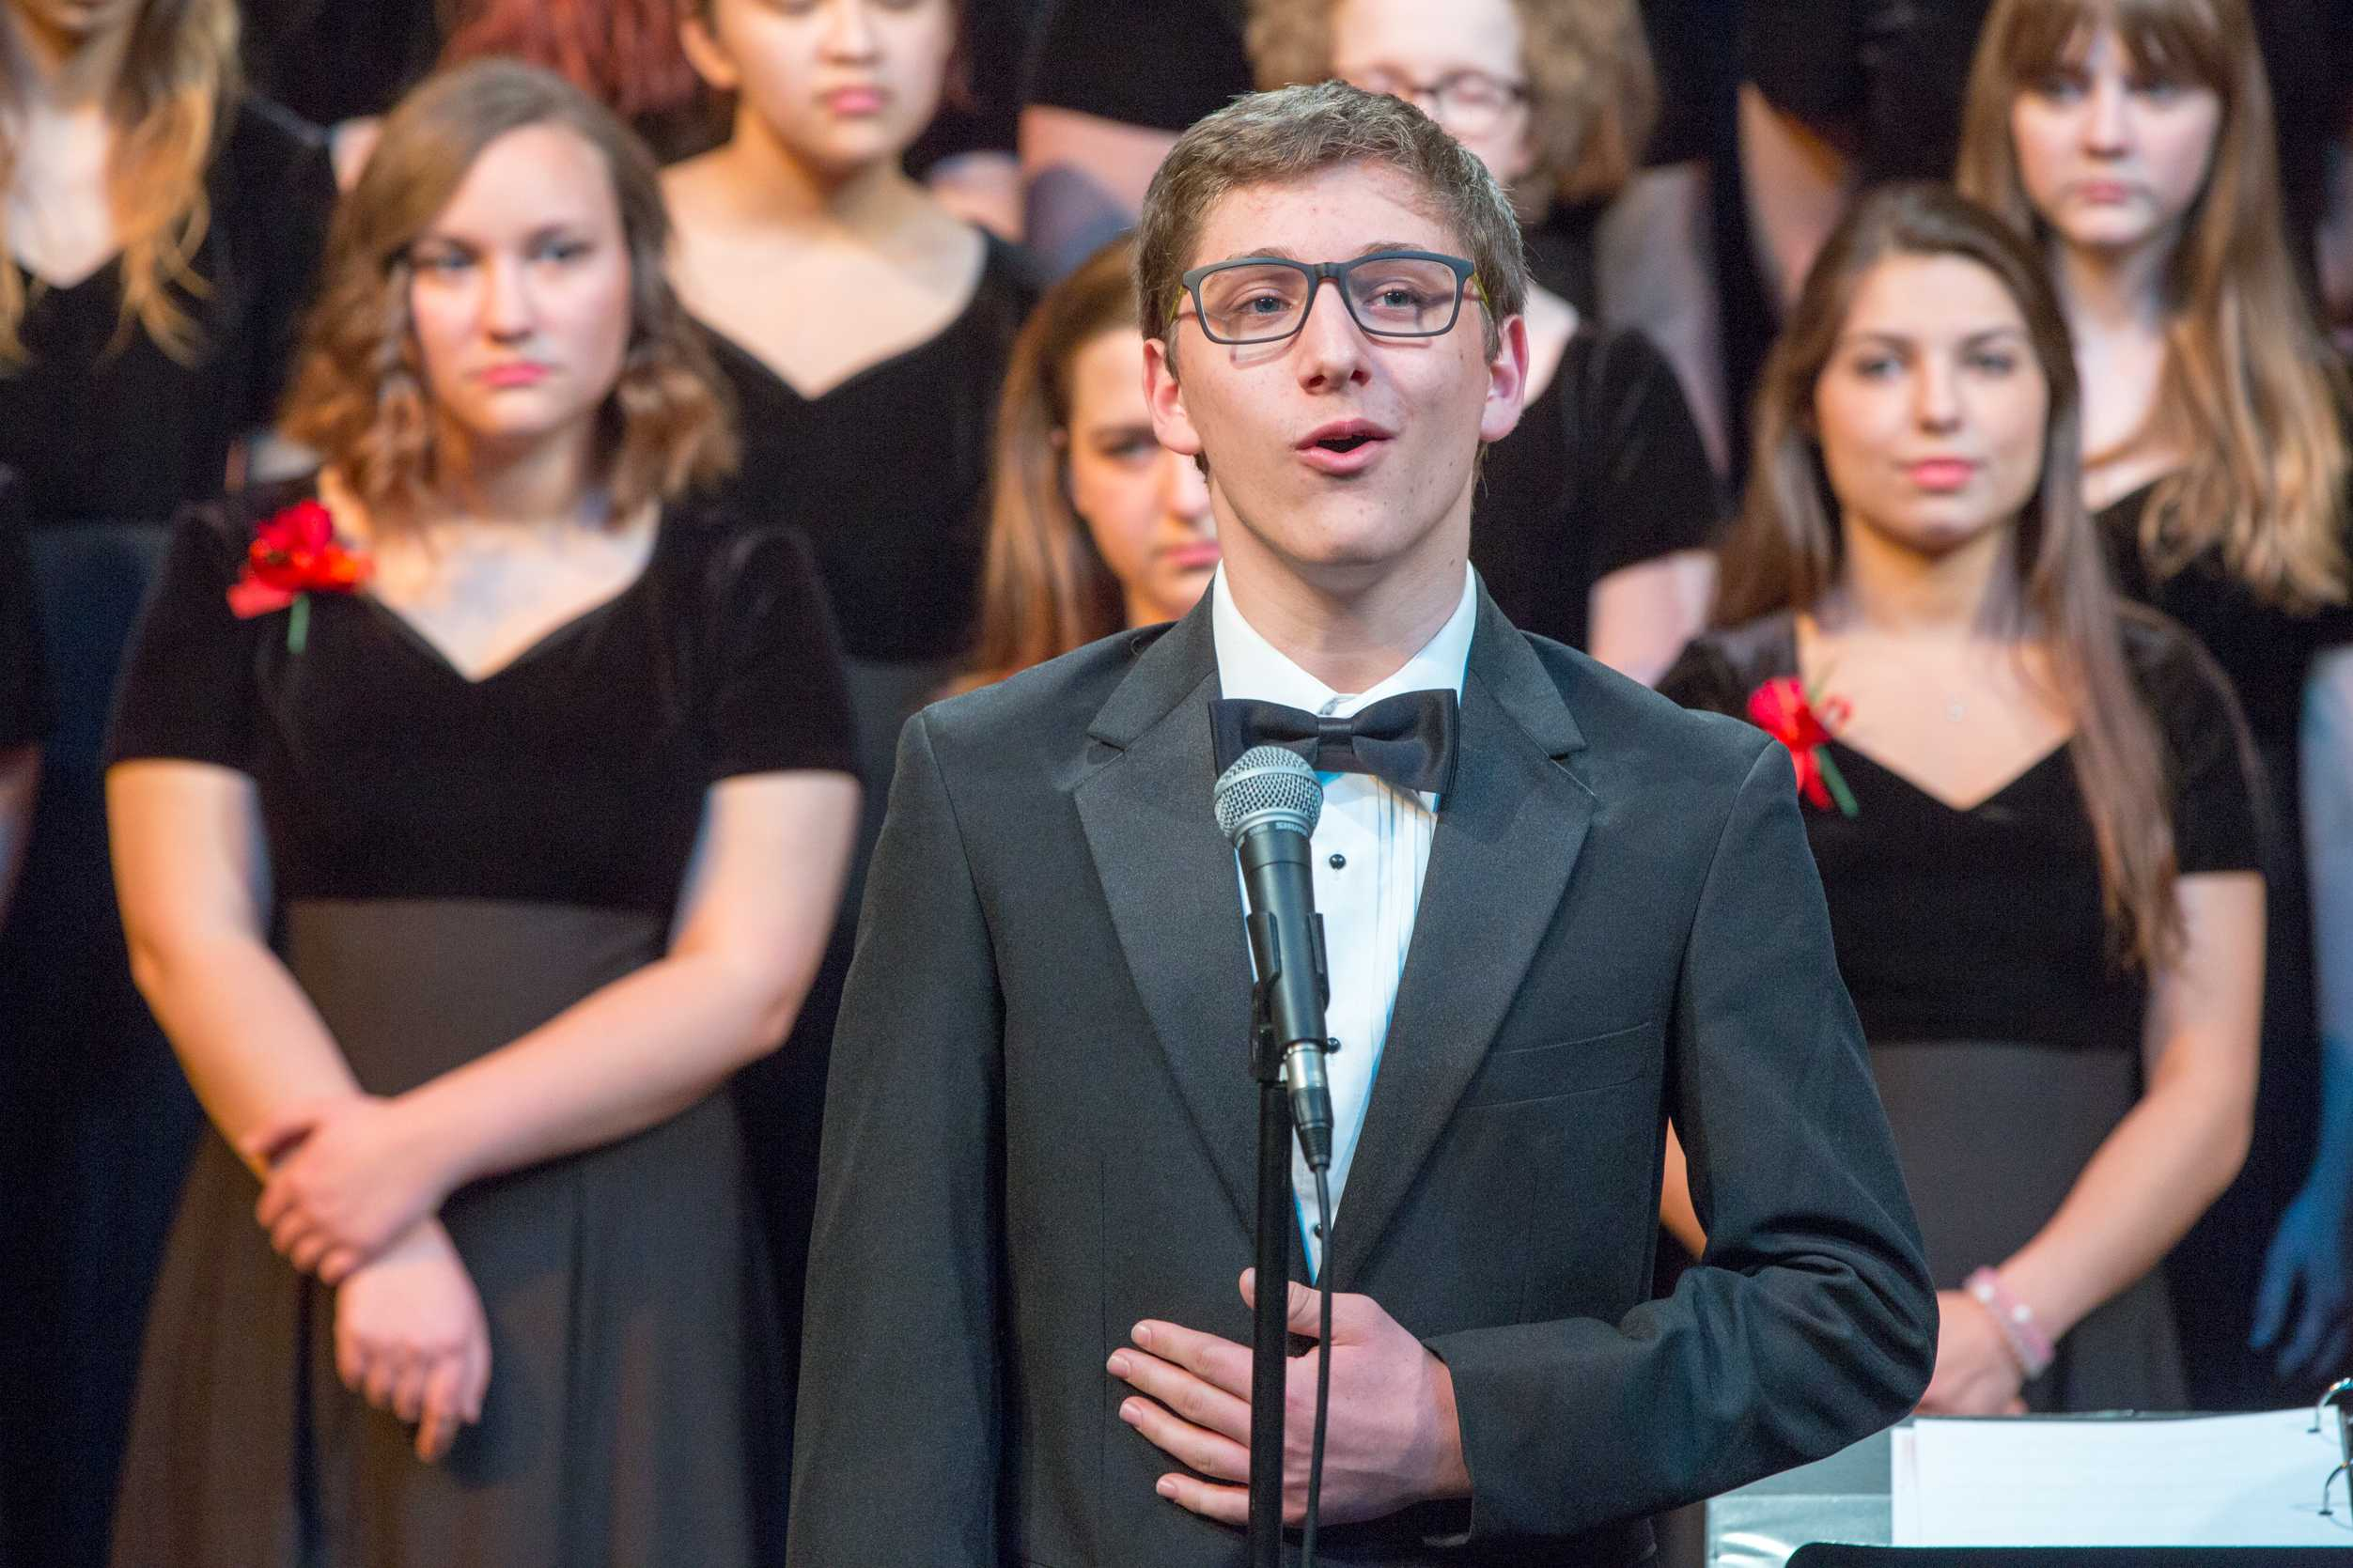 """Zack Rocklin-Waltch '17 performs """"A New Brain"""" from the titular musical. Photo by David Barron."""